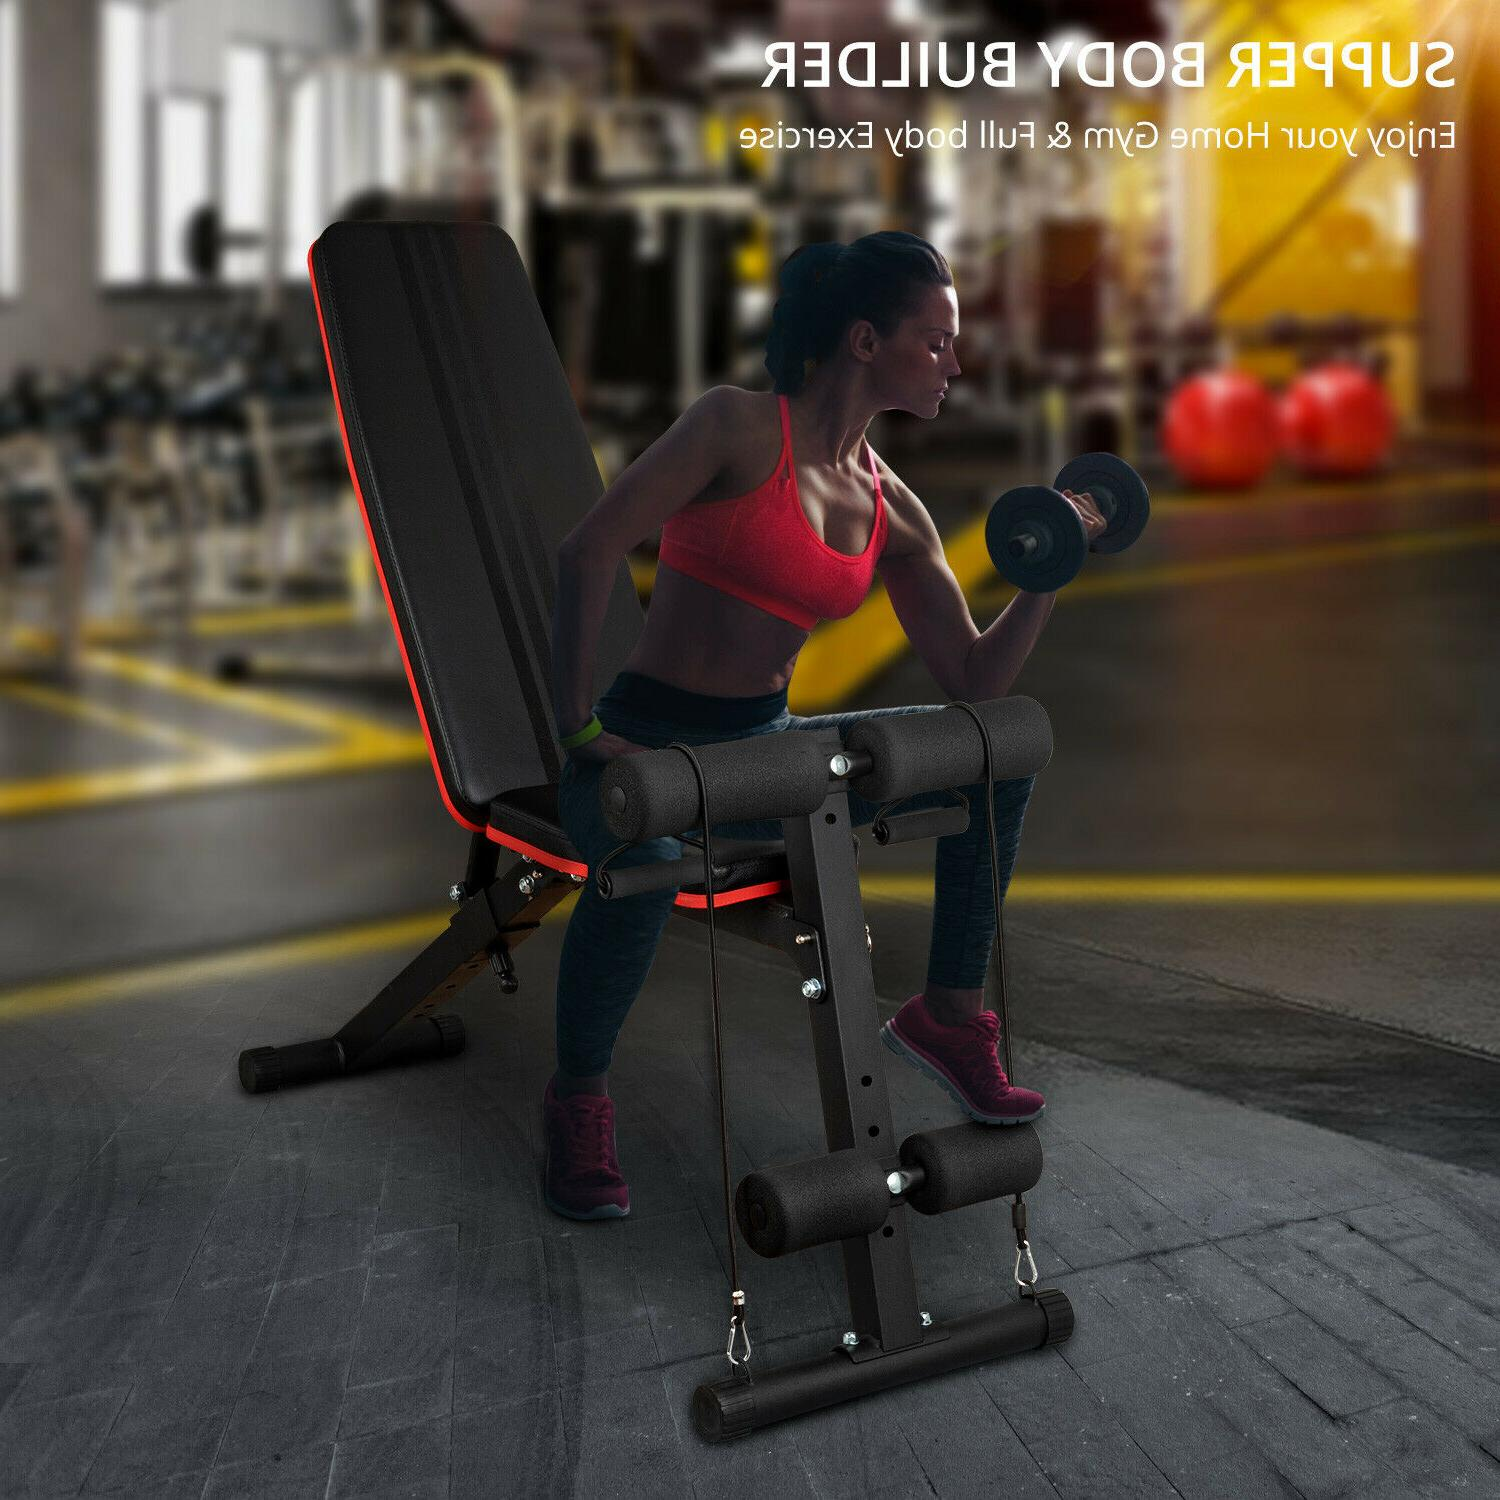 Foldable Bench Weight Training Gym Adjustable Workout